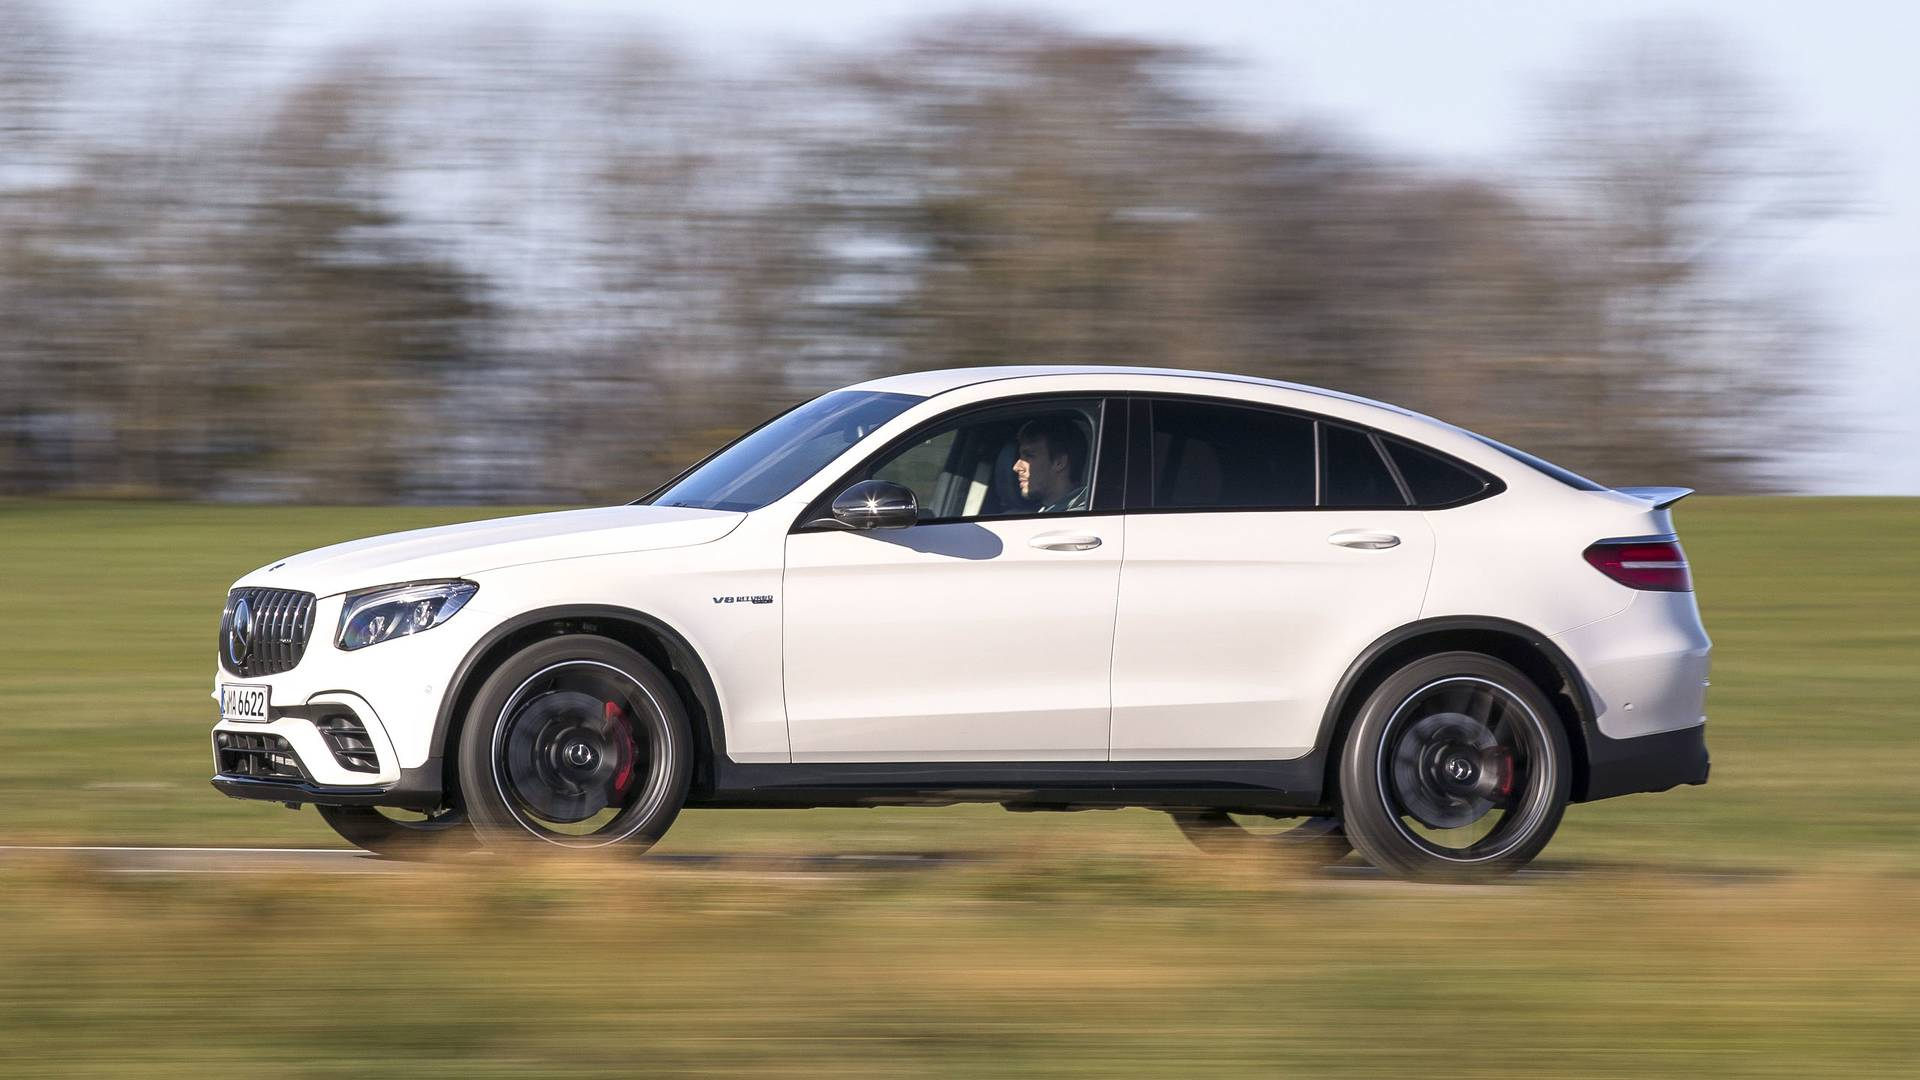 https://icdn-1.motor1.com/images/mgl/RZRr9/s1/2018-mercedes-amg-glc63-coupe-first-drive.jpg